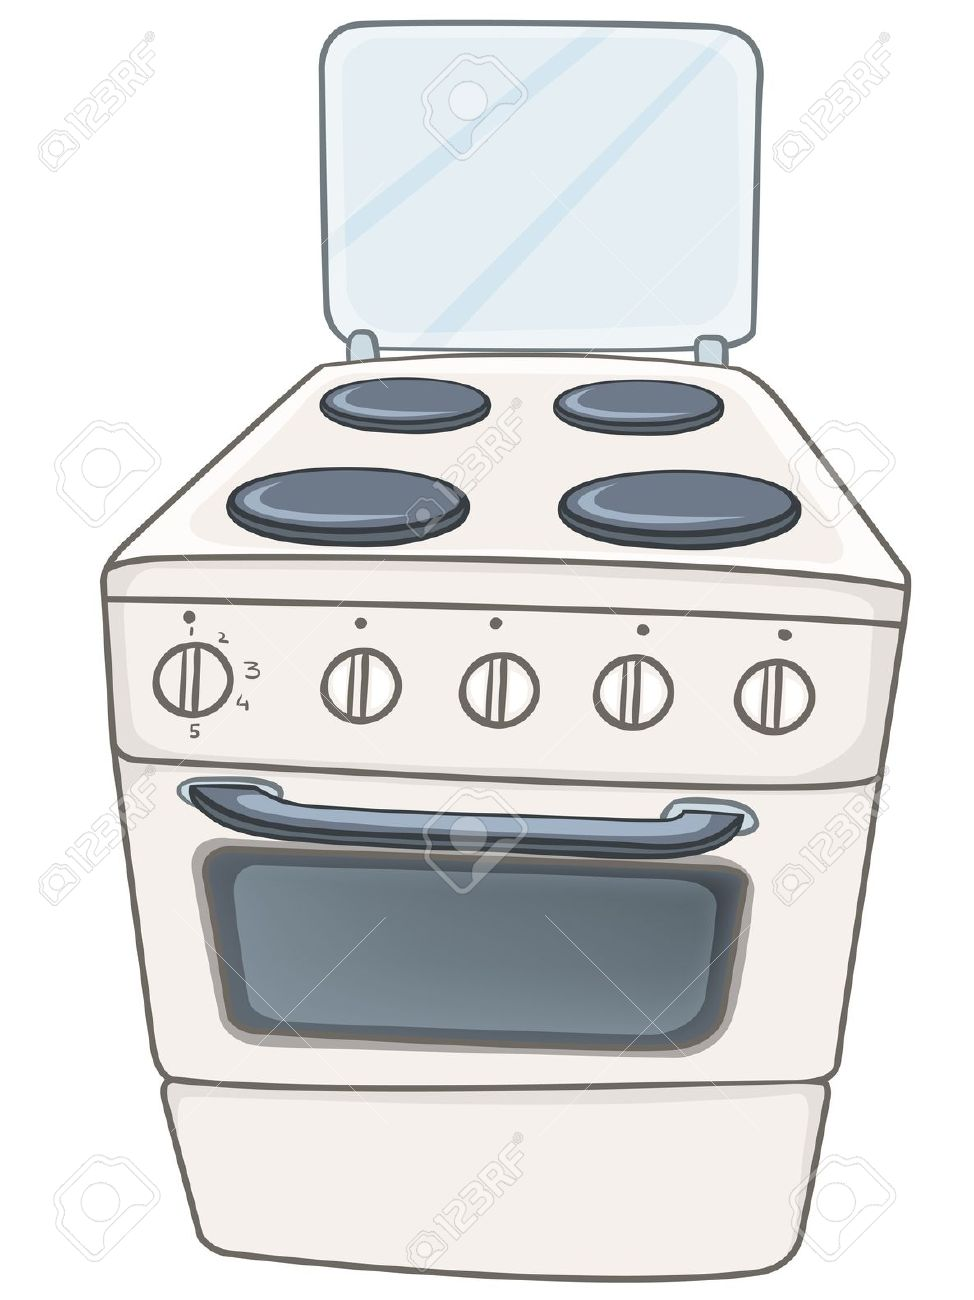 http://previews.123rf.com/images/rastudio/rastudio1203/rastudio120300072/12681003-Cartoon-Home-Kitchen-Stove-Stock-Vector-oven.jpg